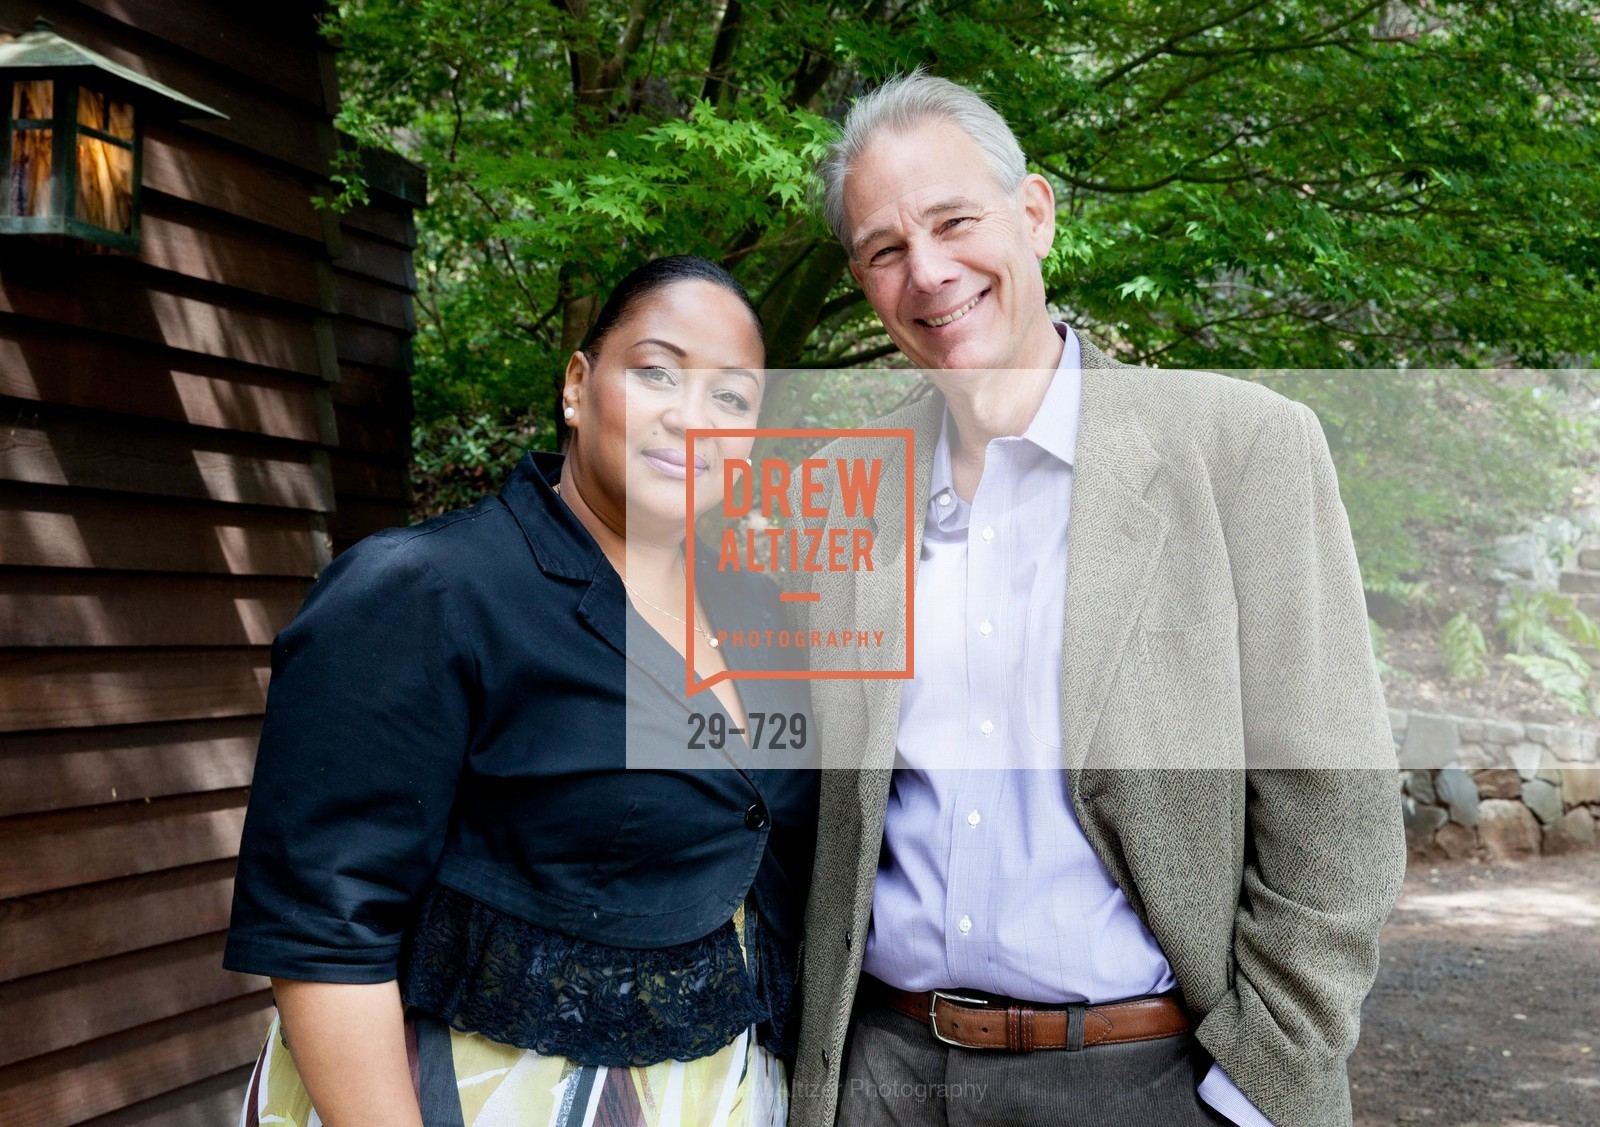 Gina Former, Will Rogers, THE TRUST FOR PUBLIC LAND Luncheon Hosted by THE DREVER FAMILY FOUNDATION, US, May 14th, 2015,Drew Altizer, Drew Altizer Photography, full-service agency, private events, San Francisco photographer, photographer california